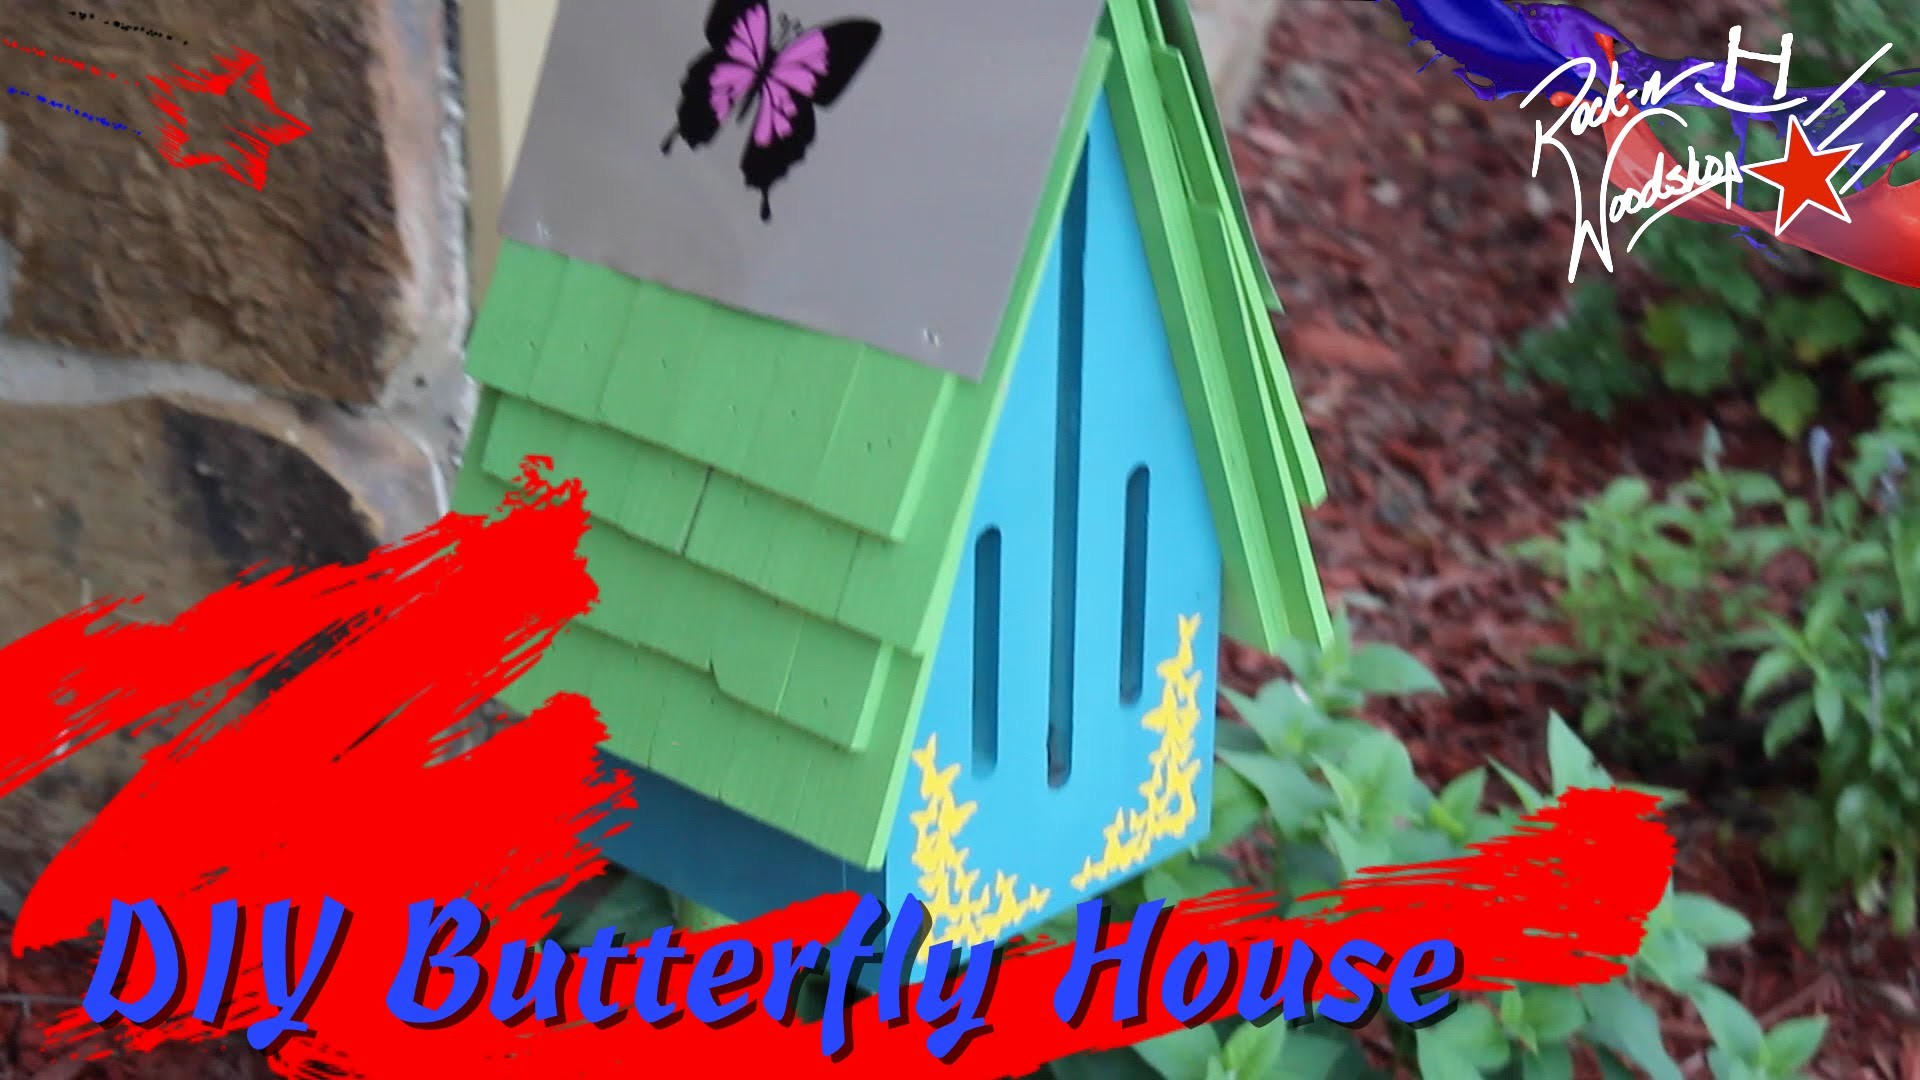 DIY Butterfly House - A Father's Day Project